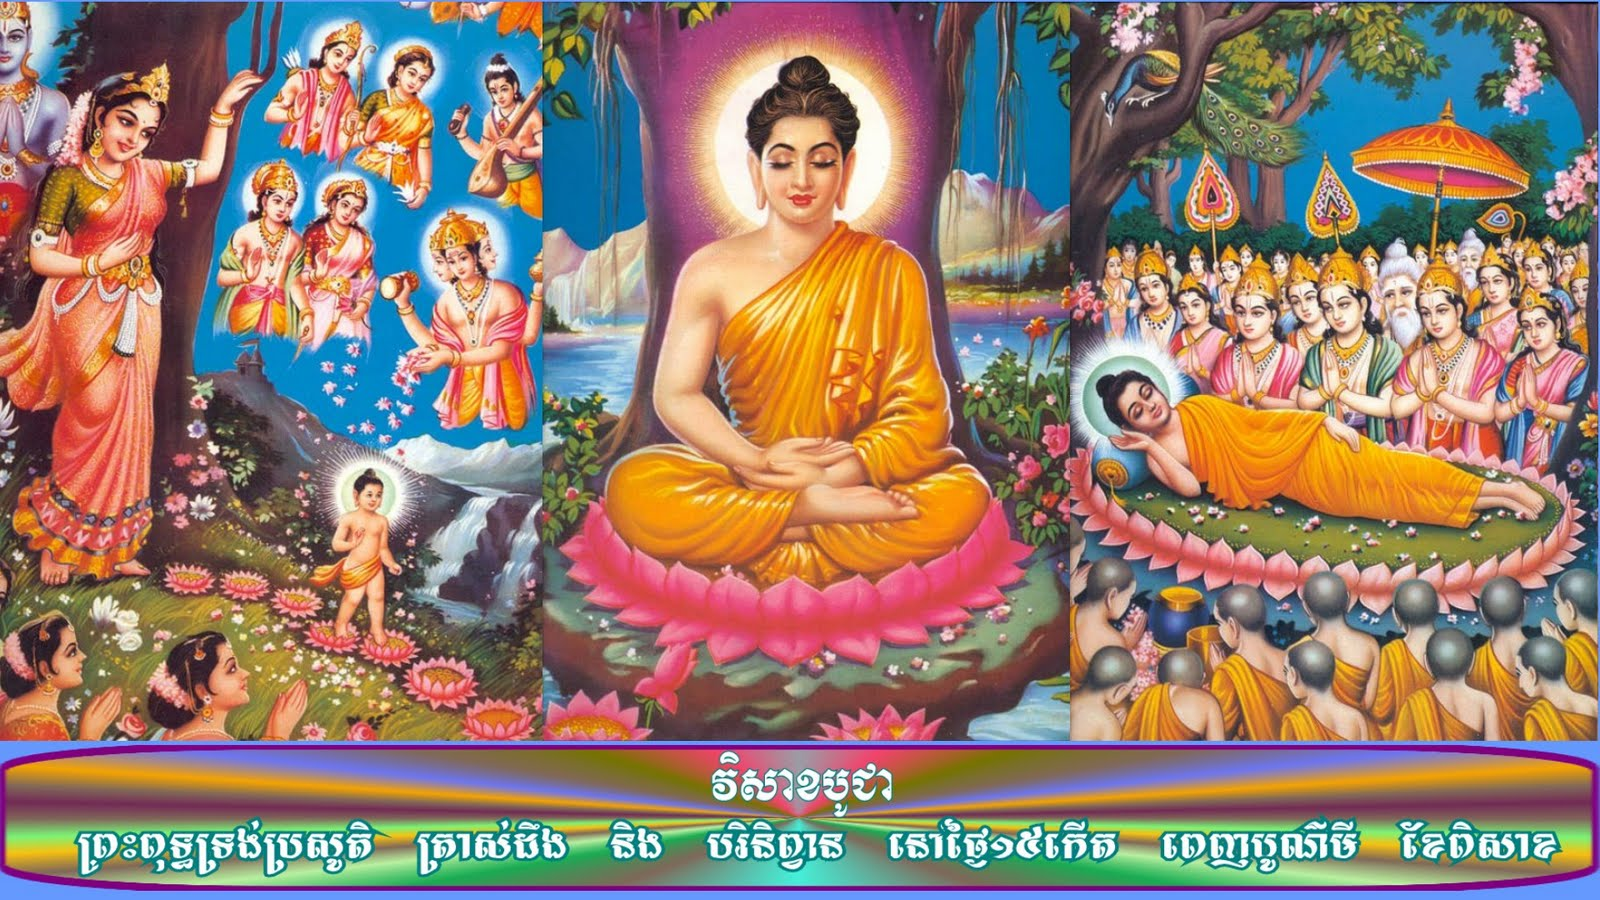 salvation in buddhism Buddhism beliefs - how does a belief in buddha differ from a belief in god buddhists do not believe in a divine being, therefore they have no concept of salvation and atonement for wrong doings.